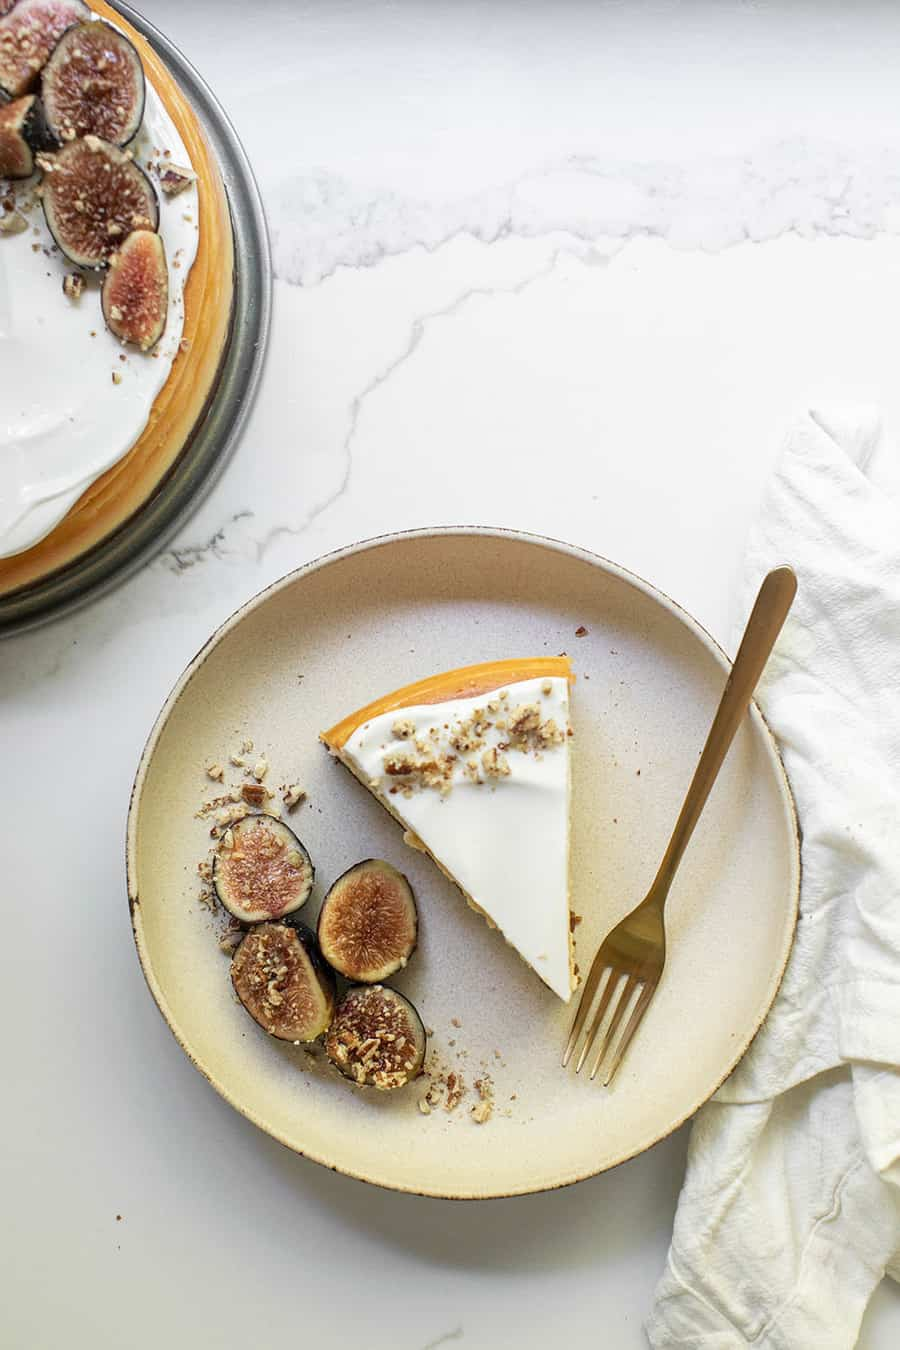 Slice of cheesecake on a plate with figs